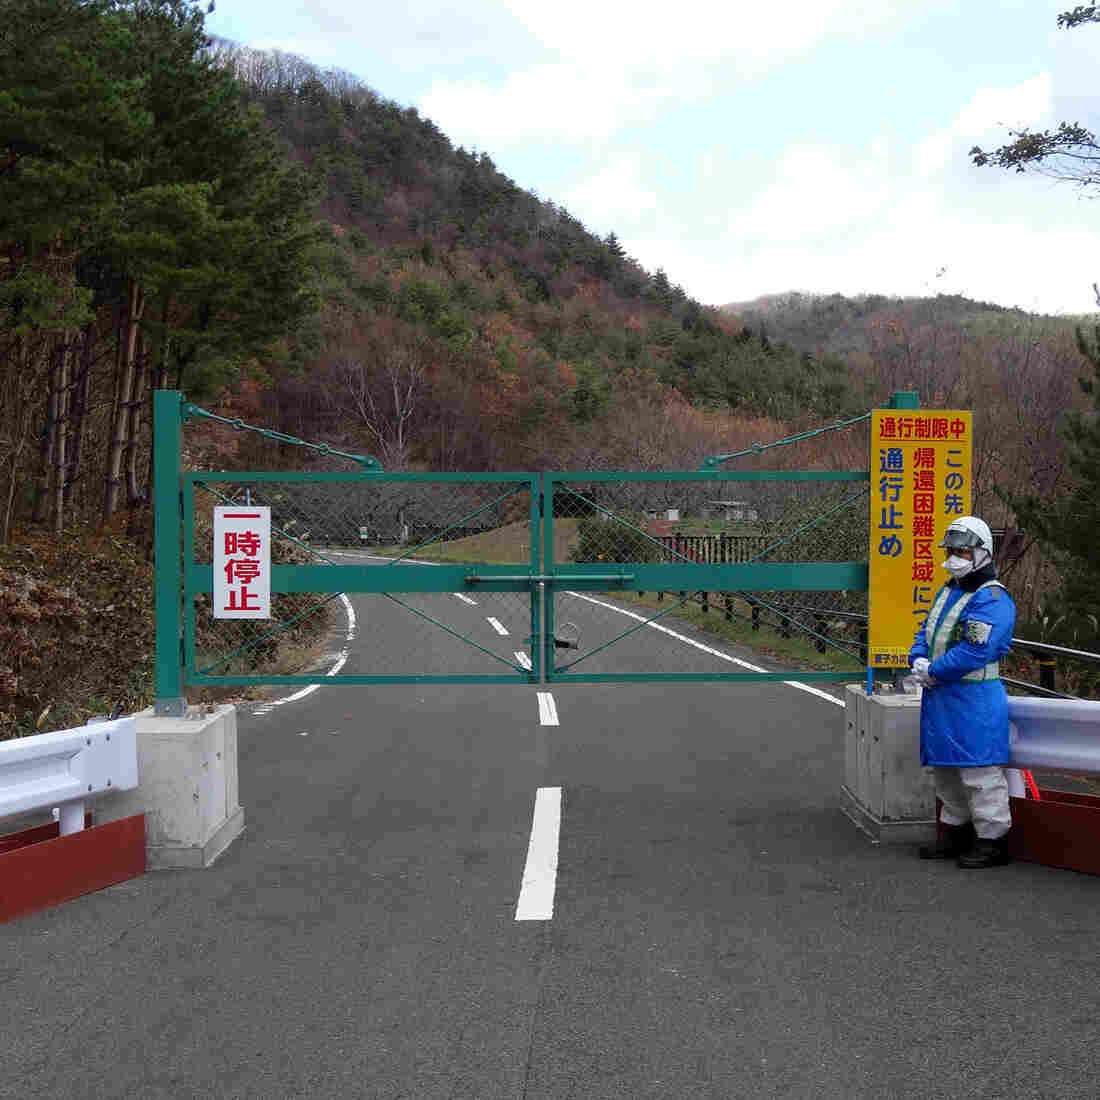 Depression And Anxiety Could Be Fukushima's Lasting Legacy